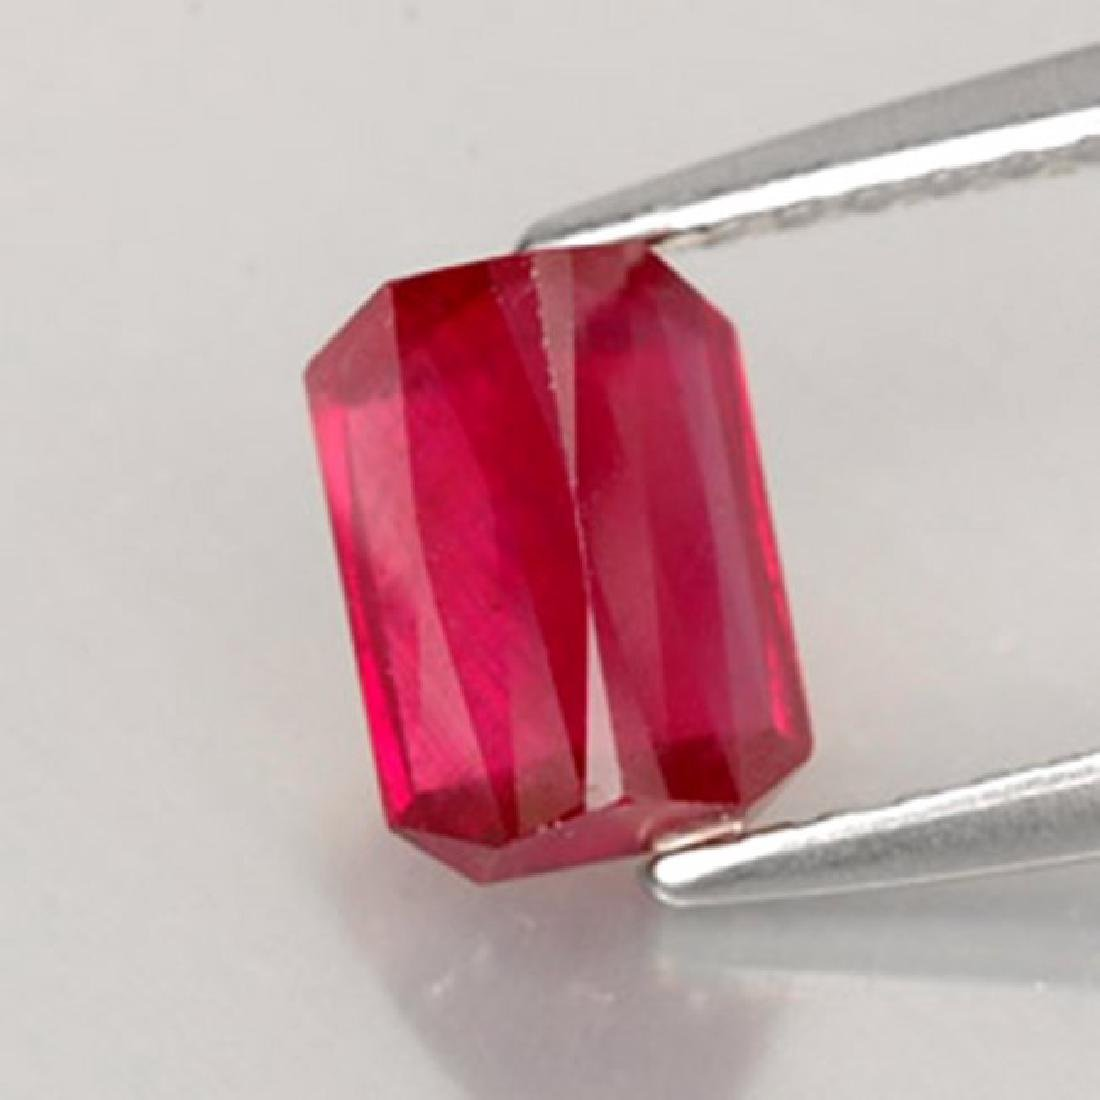 Natural Ruby Octagon Facet 1.32Ct 6.8x4.6x3.6 mm - 2